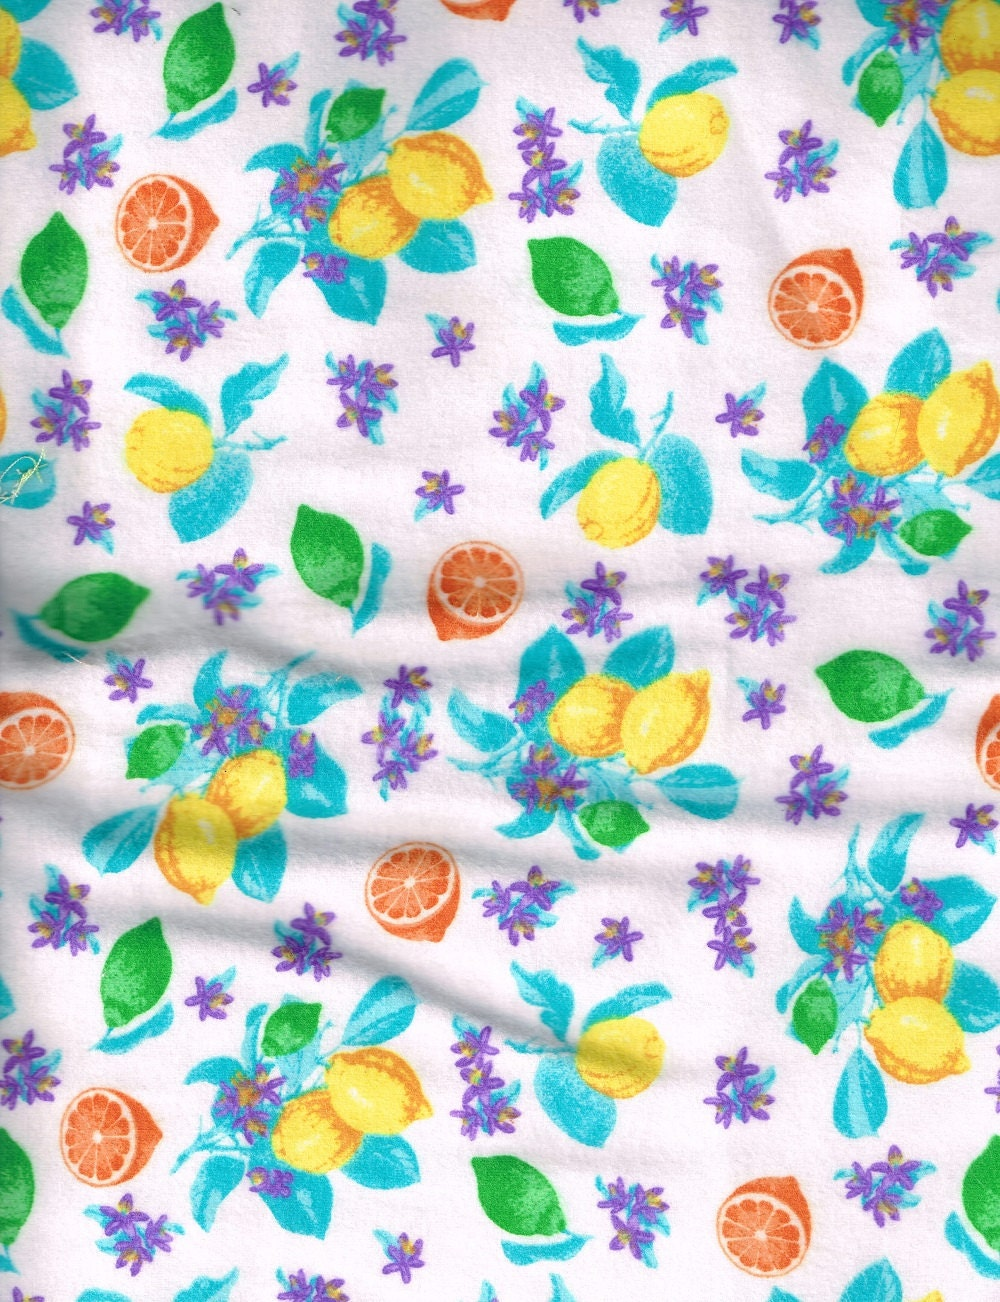 Fabric Soft Flannel Fabric Citrus Fruit Orange by ...